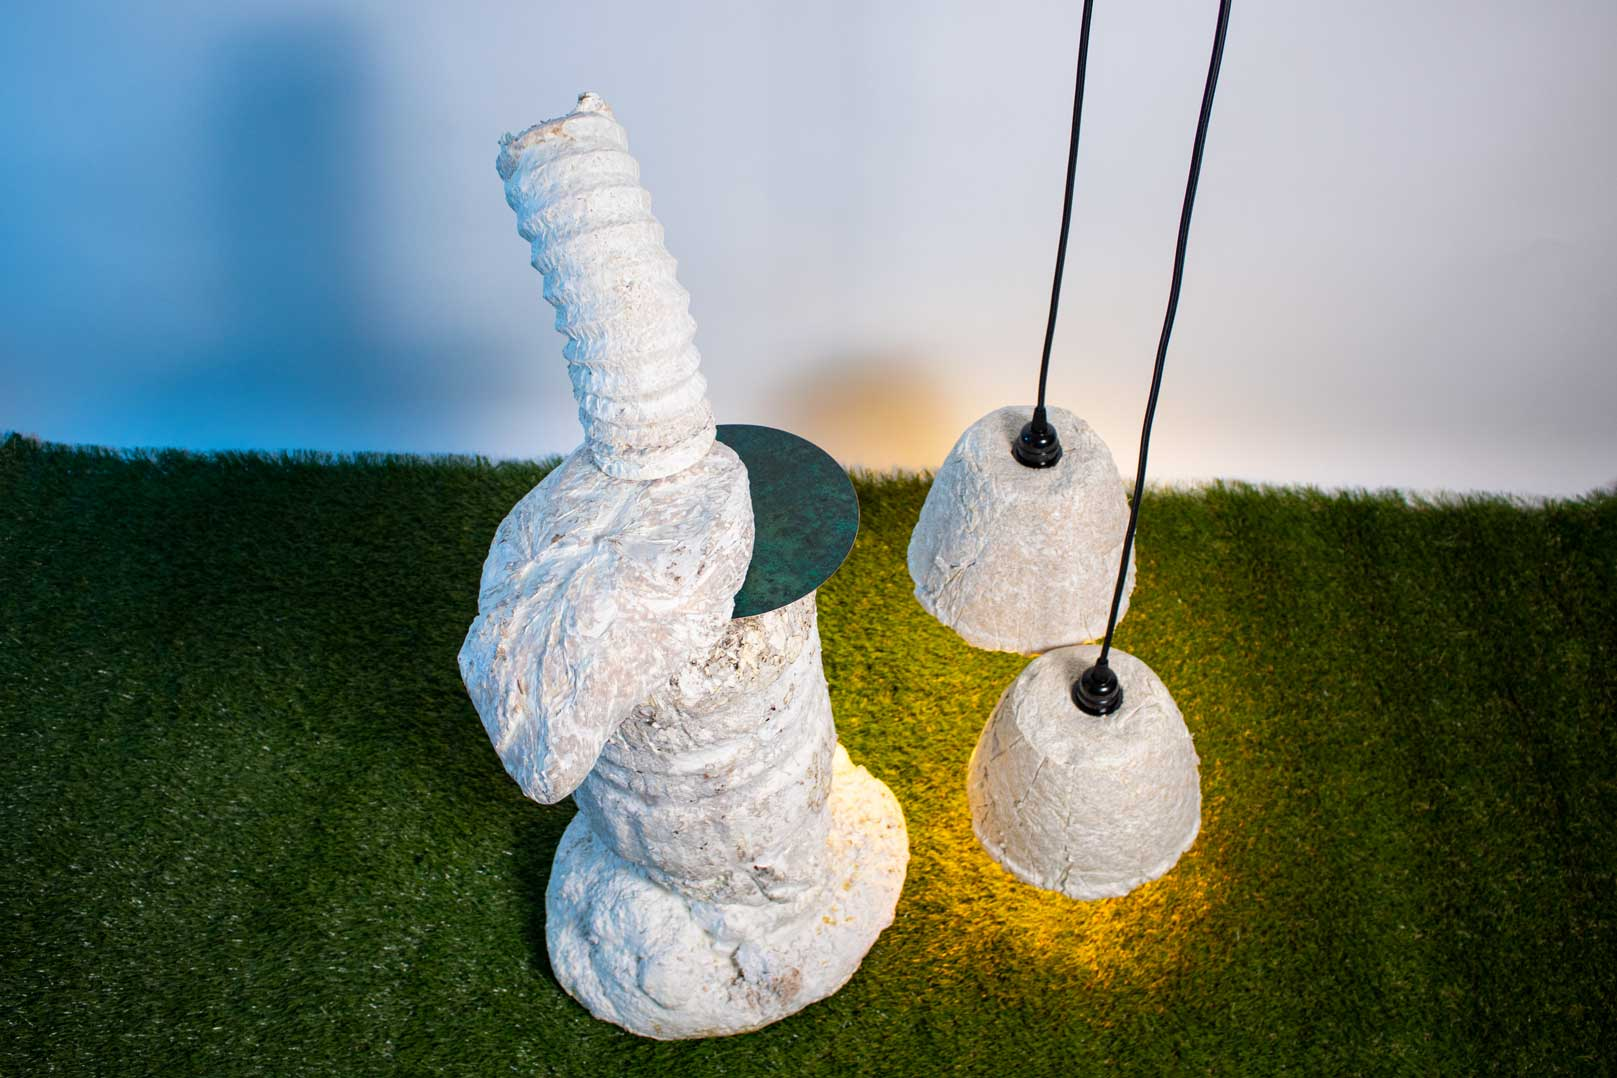 Top down view of organic white/cream ceramic sculpture sitting on faux grass surface. To the right, two light colored organic ceramic lamps hang from black wiring. The lam ps cast a warm yellow glow over the faux grass and white wall.